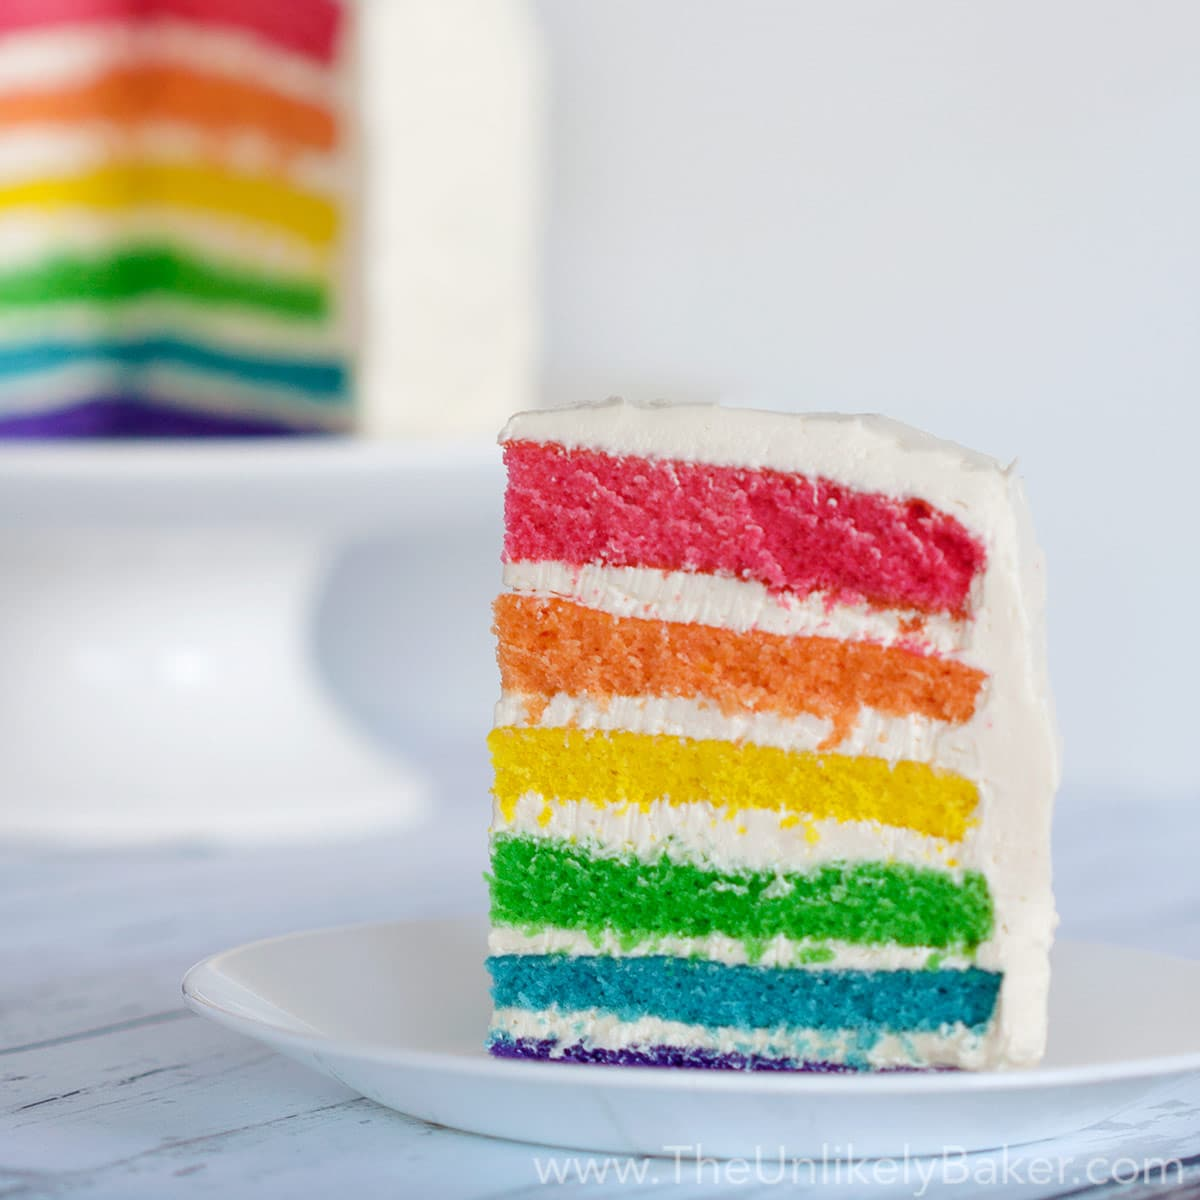 You Can Make Any Cake a Rainbow Cake - The Unlikely Baker